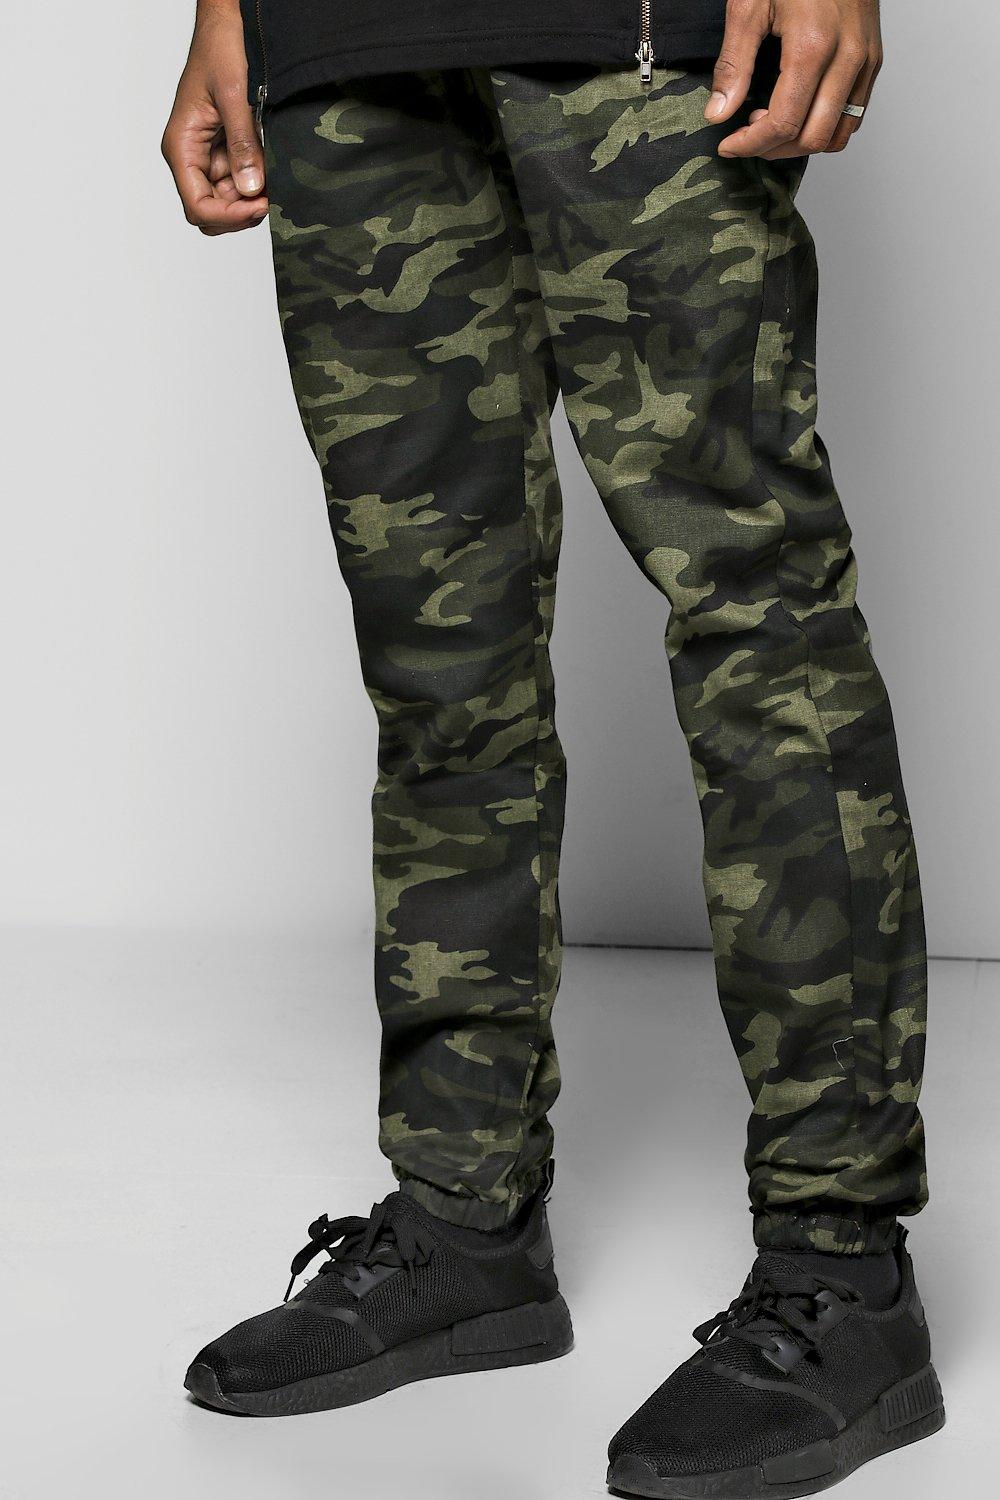 8778a24bc2bac8 Mens Camo Cuffed Skinny Joggers. Hover to zoom